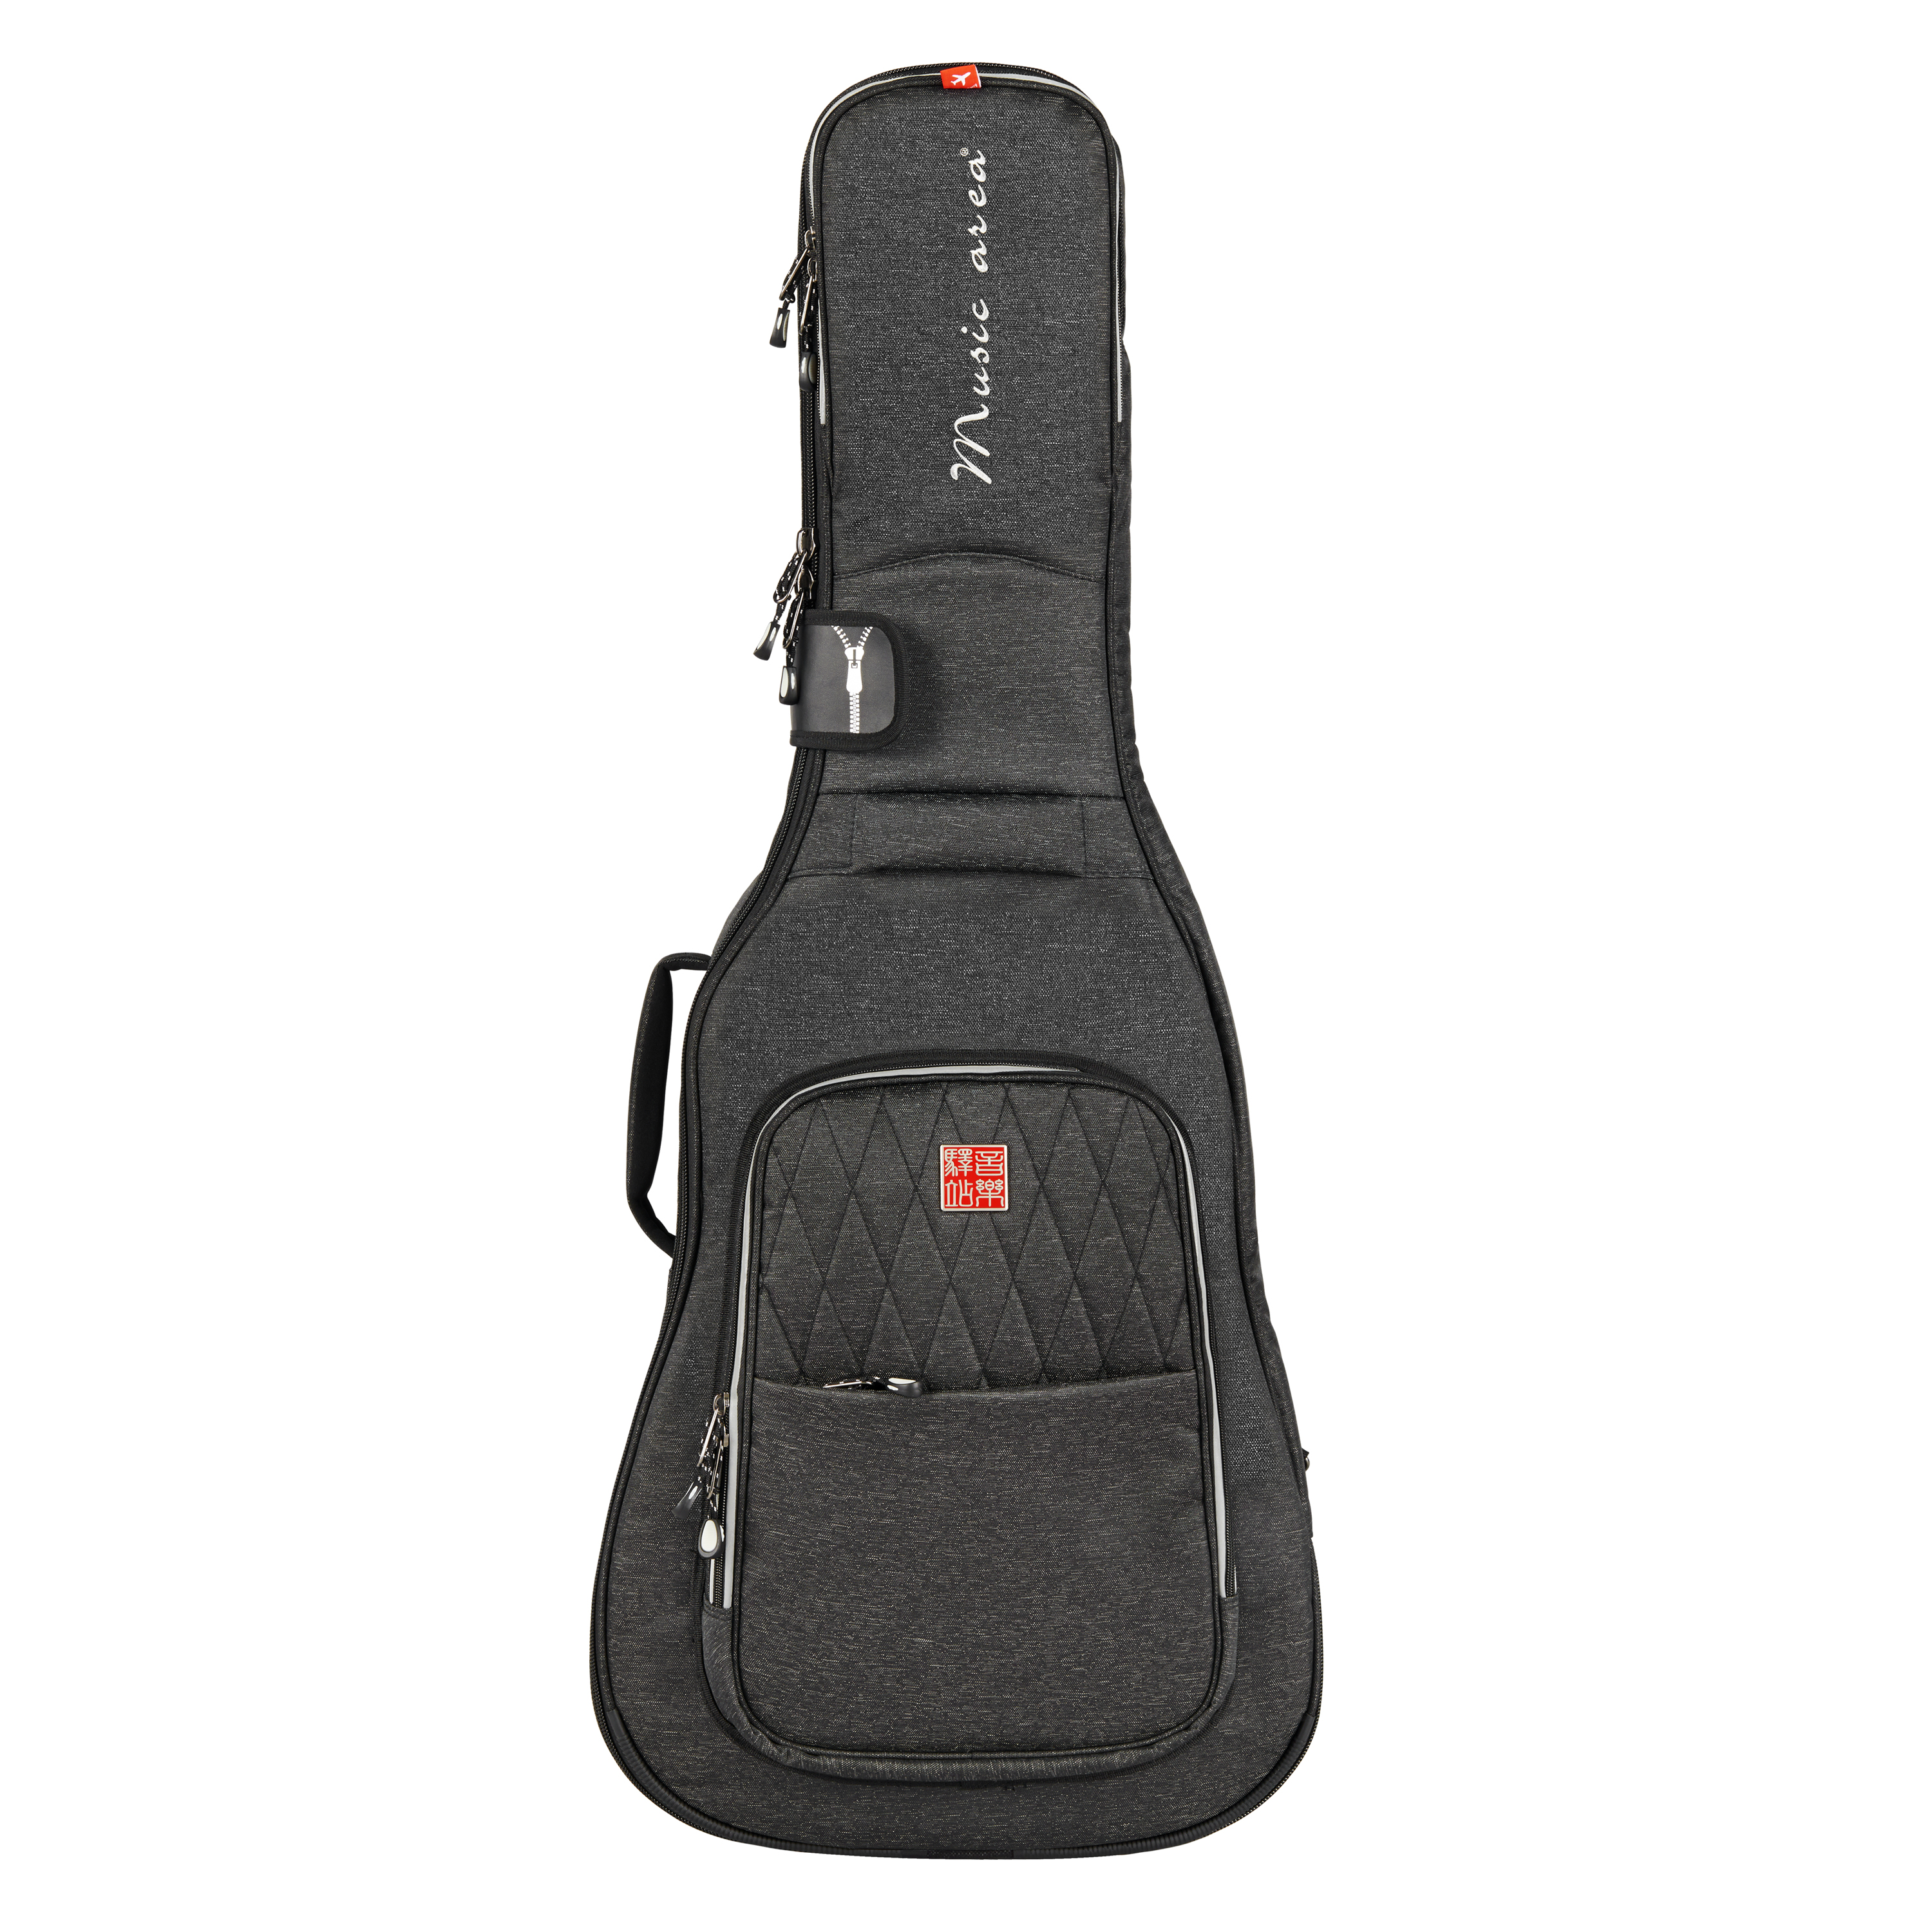 Music Area High-end Classic Guitar Gig Bag Waterproof 30mm Cushion 900D Polyester Black Soft Gitar Case TANG30 12mm waterproof soprano concert ukulele bag case backpack 23 24 26 inch ukelele beige mini guitar accessories gig pu leather